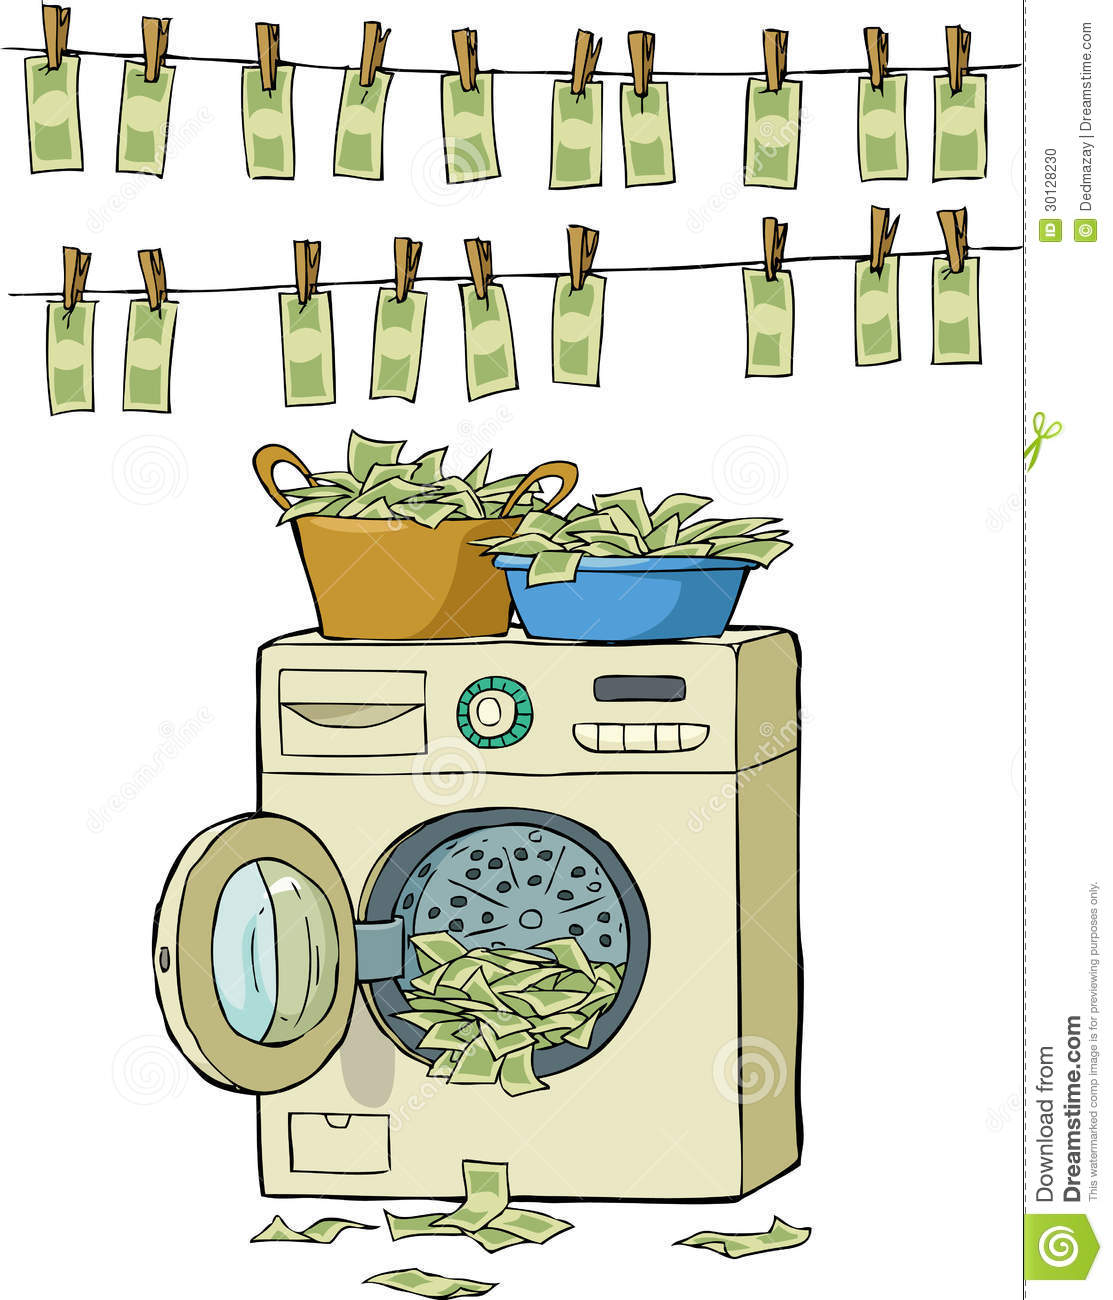 an analysis of the money laundering the process and its affects A case study is a training system based on the analysis, decision, and discussion of specific situations, both simulated and real  money laundering case study .